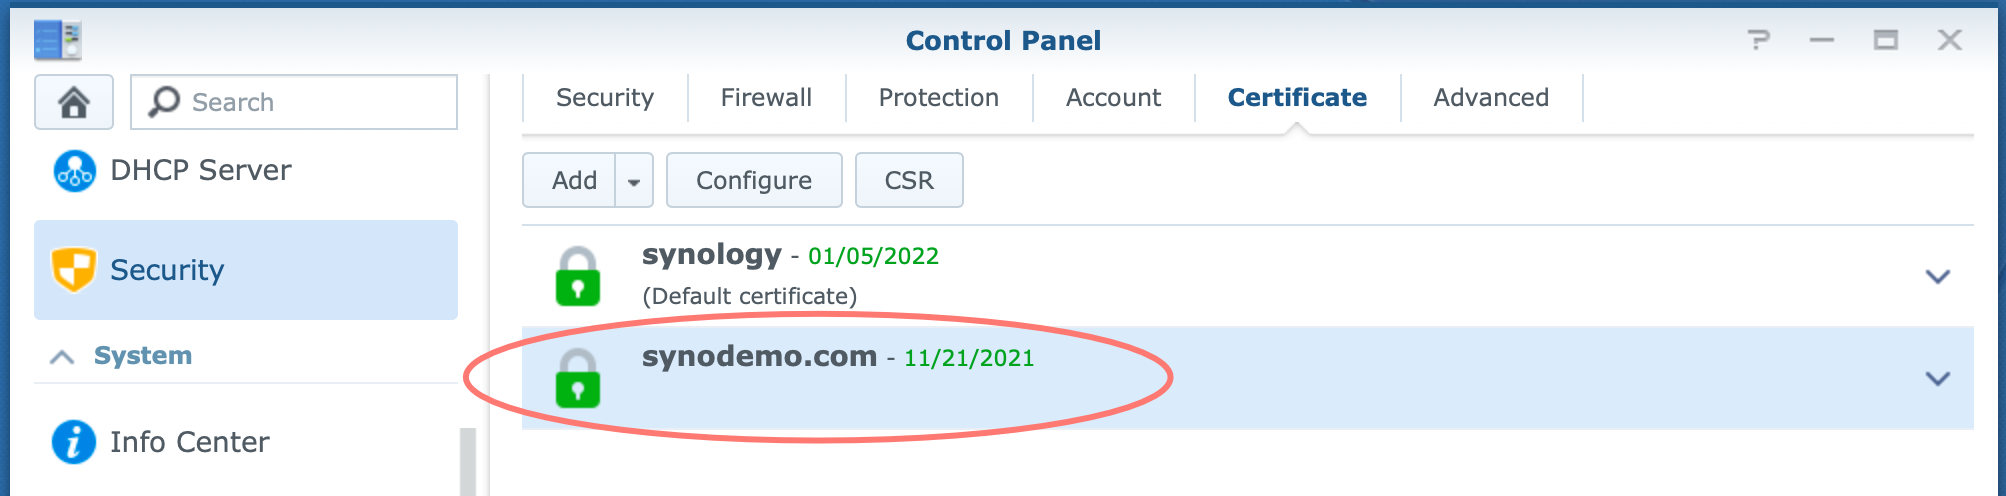 synology, control panel, certificate